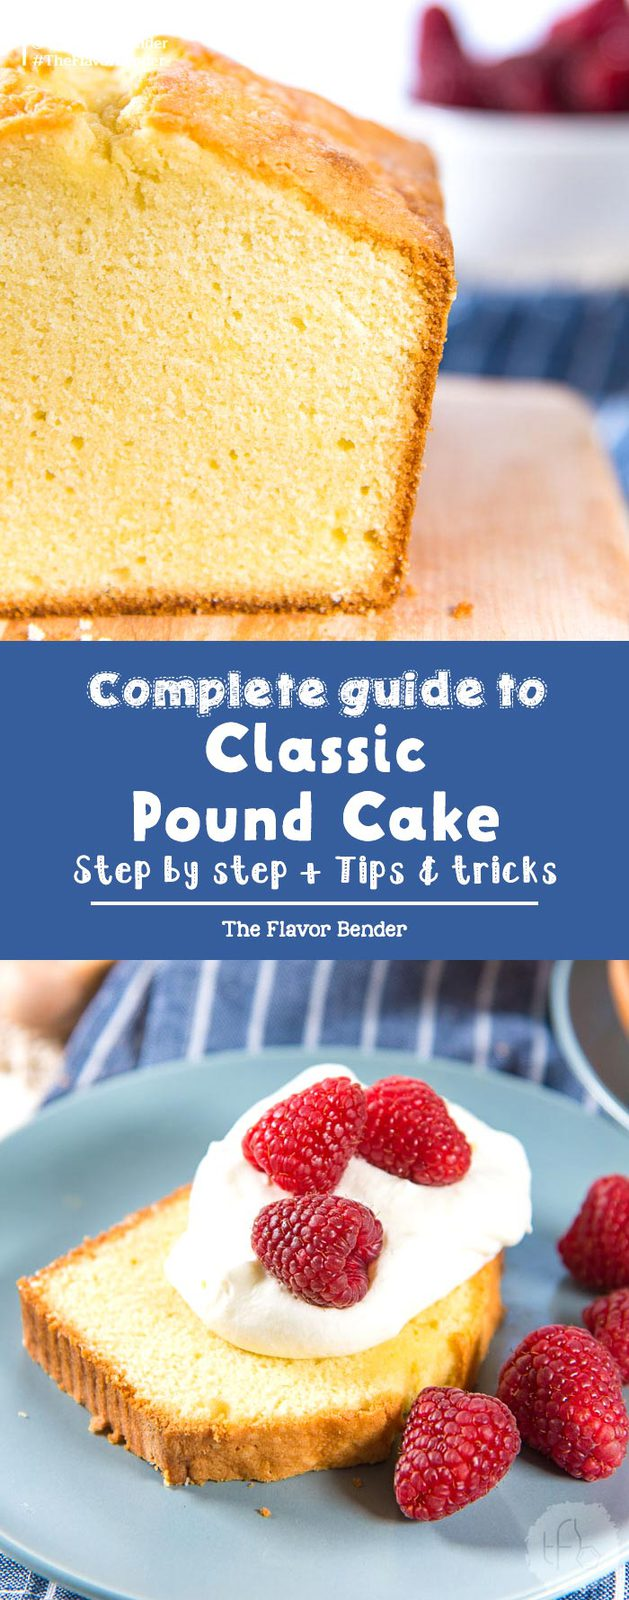 Classic Pound Cake - A complete guide on how to make perfect, delicious and moist Pound Cake even if you're a baking novice! Tips + Tricks and Troubleshooting guide. #PoundCake #Desserts #Cakes #Baking #BakingGuide